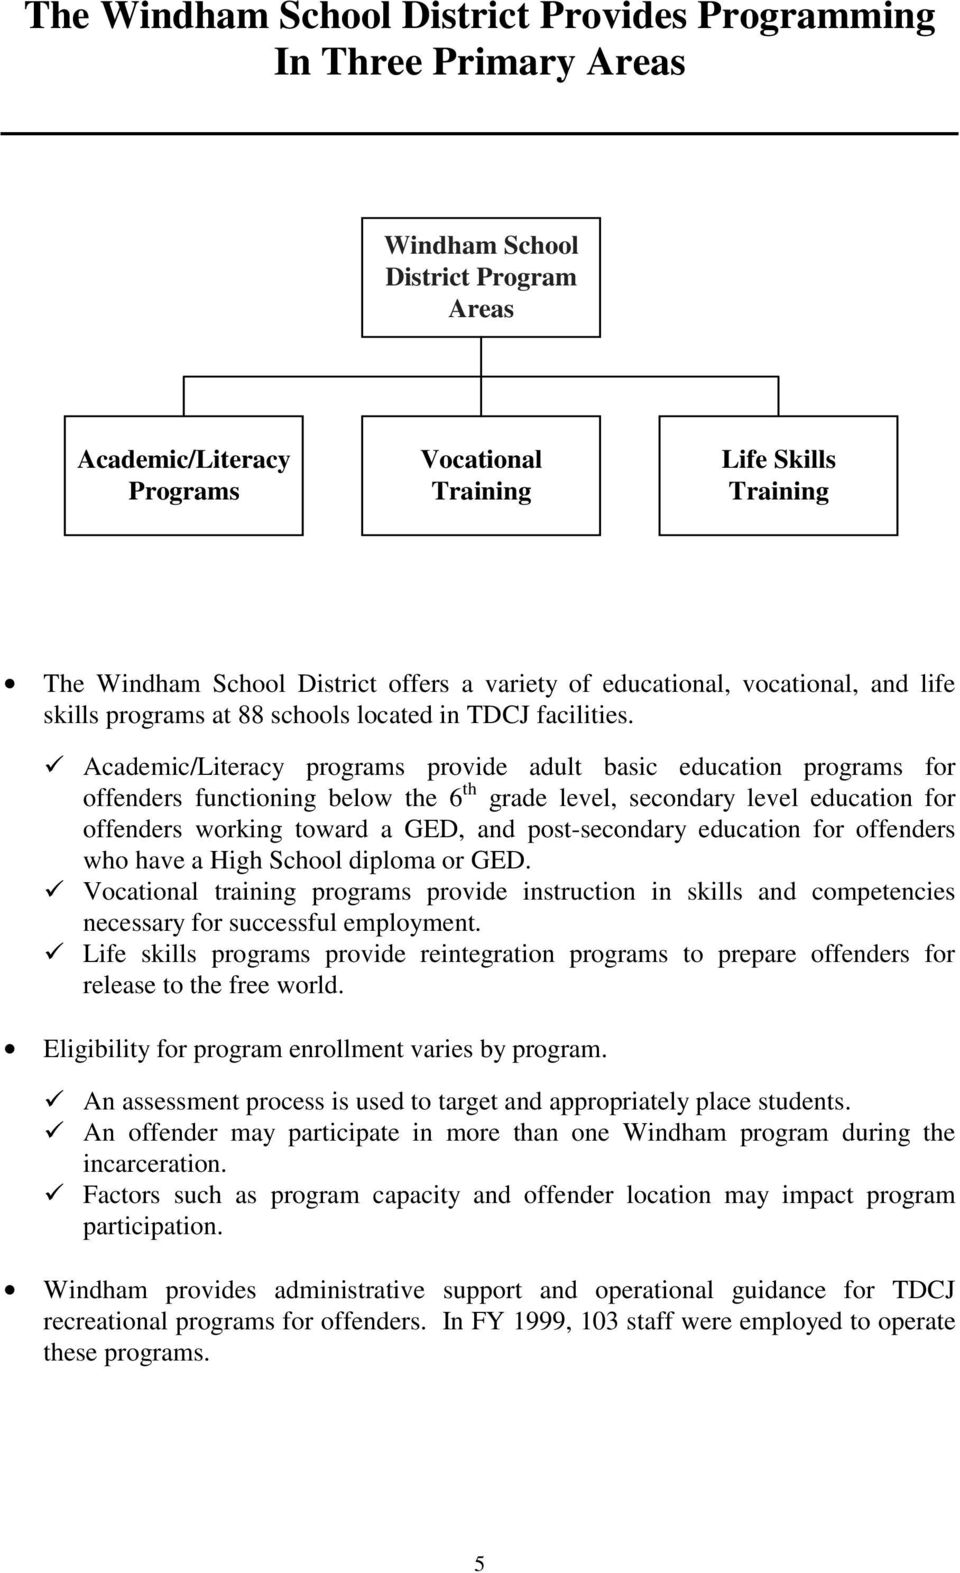 "!""academic/literacy programs provide adult basic education programs for offenders functioning below the 6 th grade level, secondary level education for offenders working toward a GED, and"